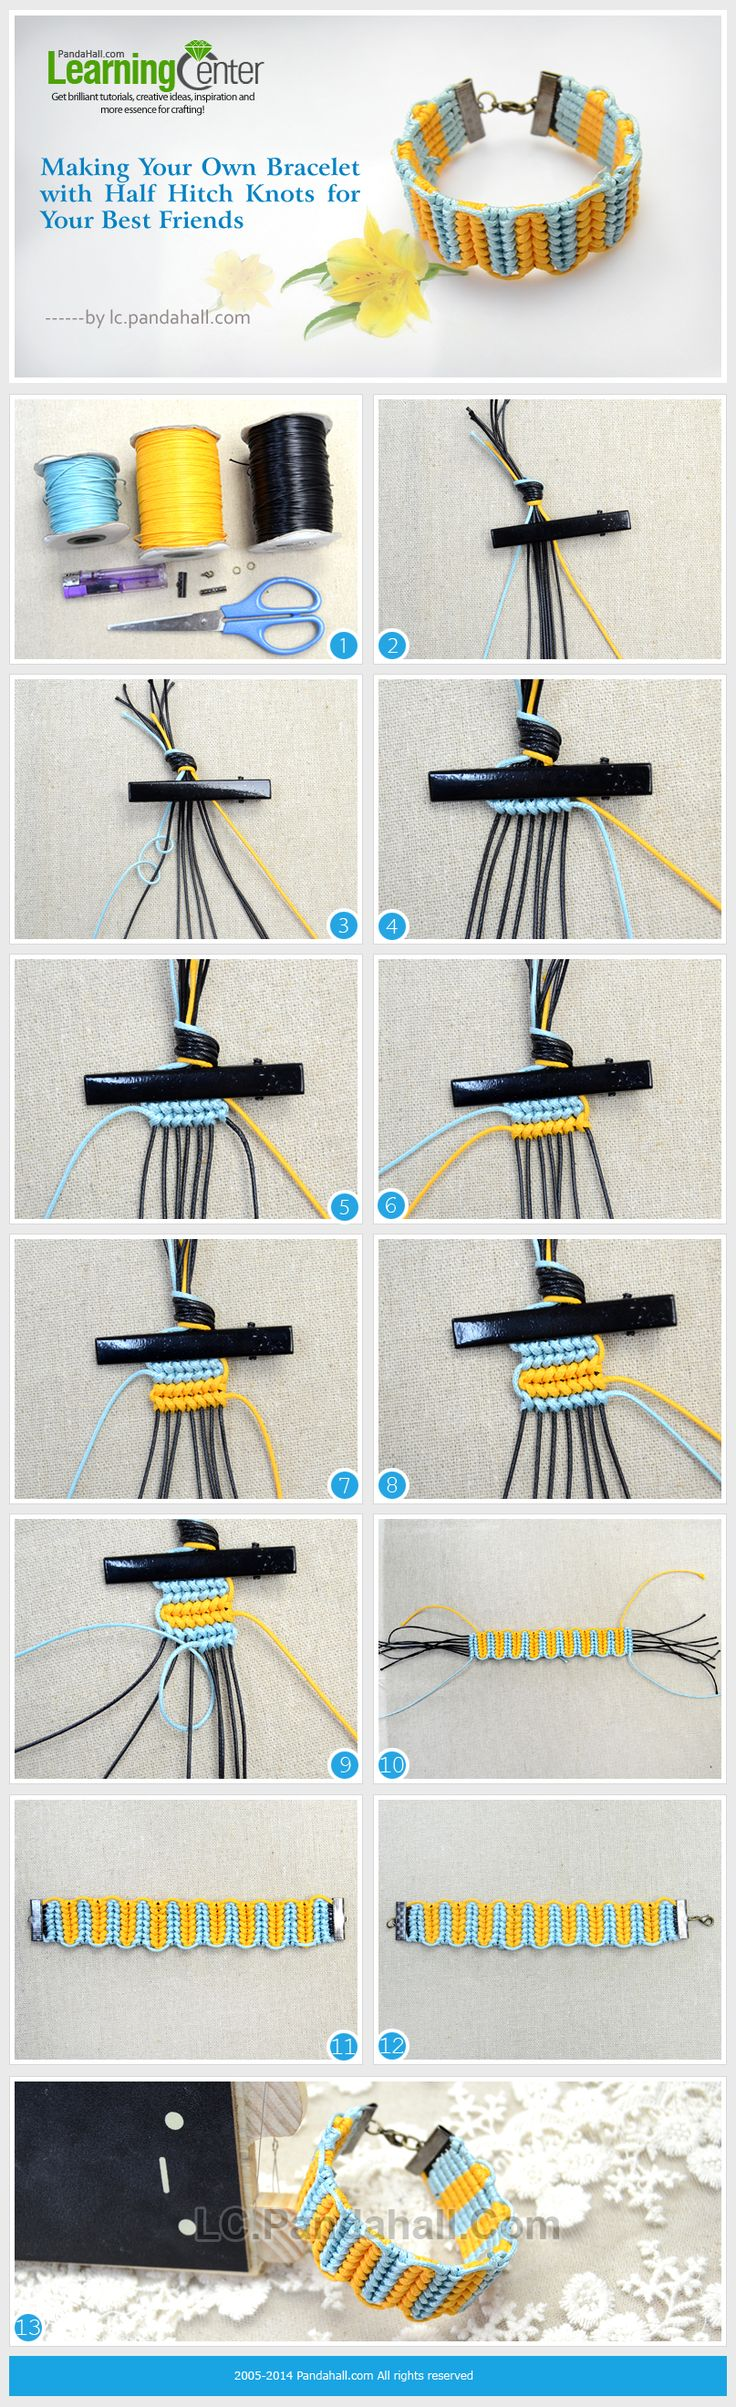 Making Your Own Bracelet with Half Hitch Knots for Your Best Friends